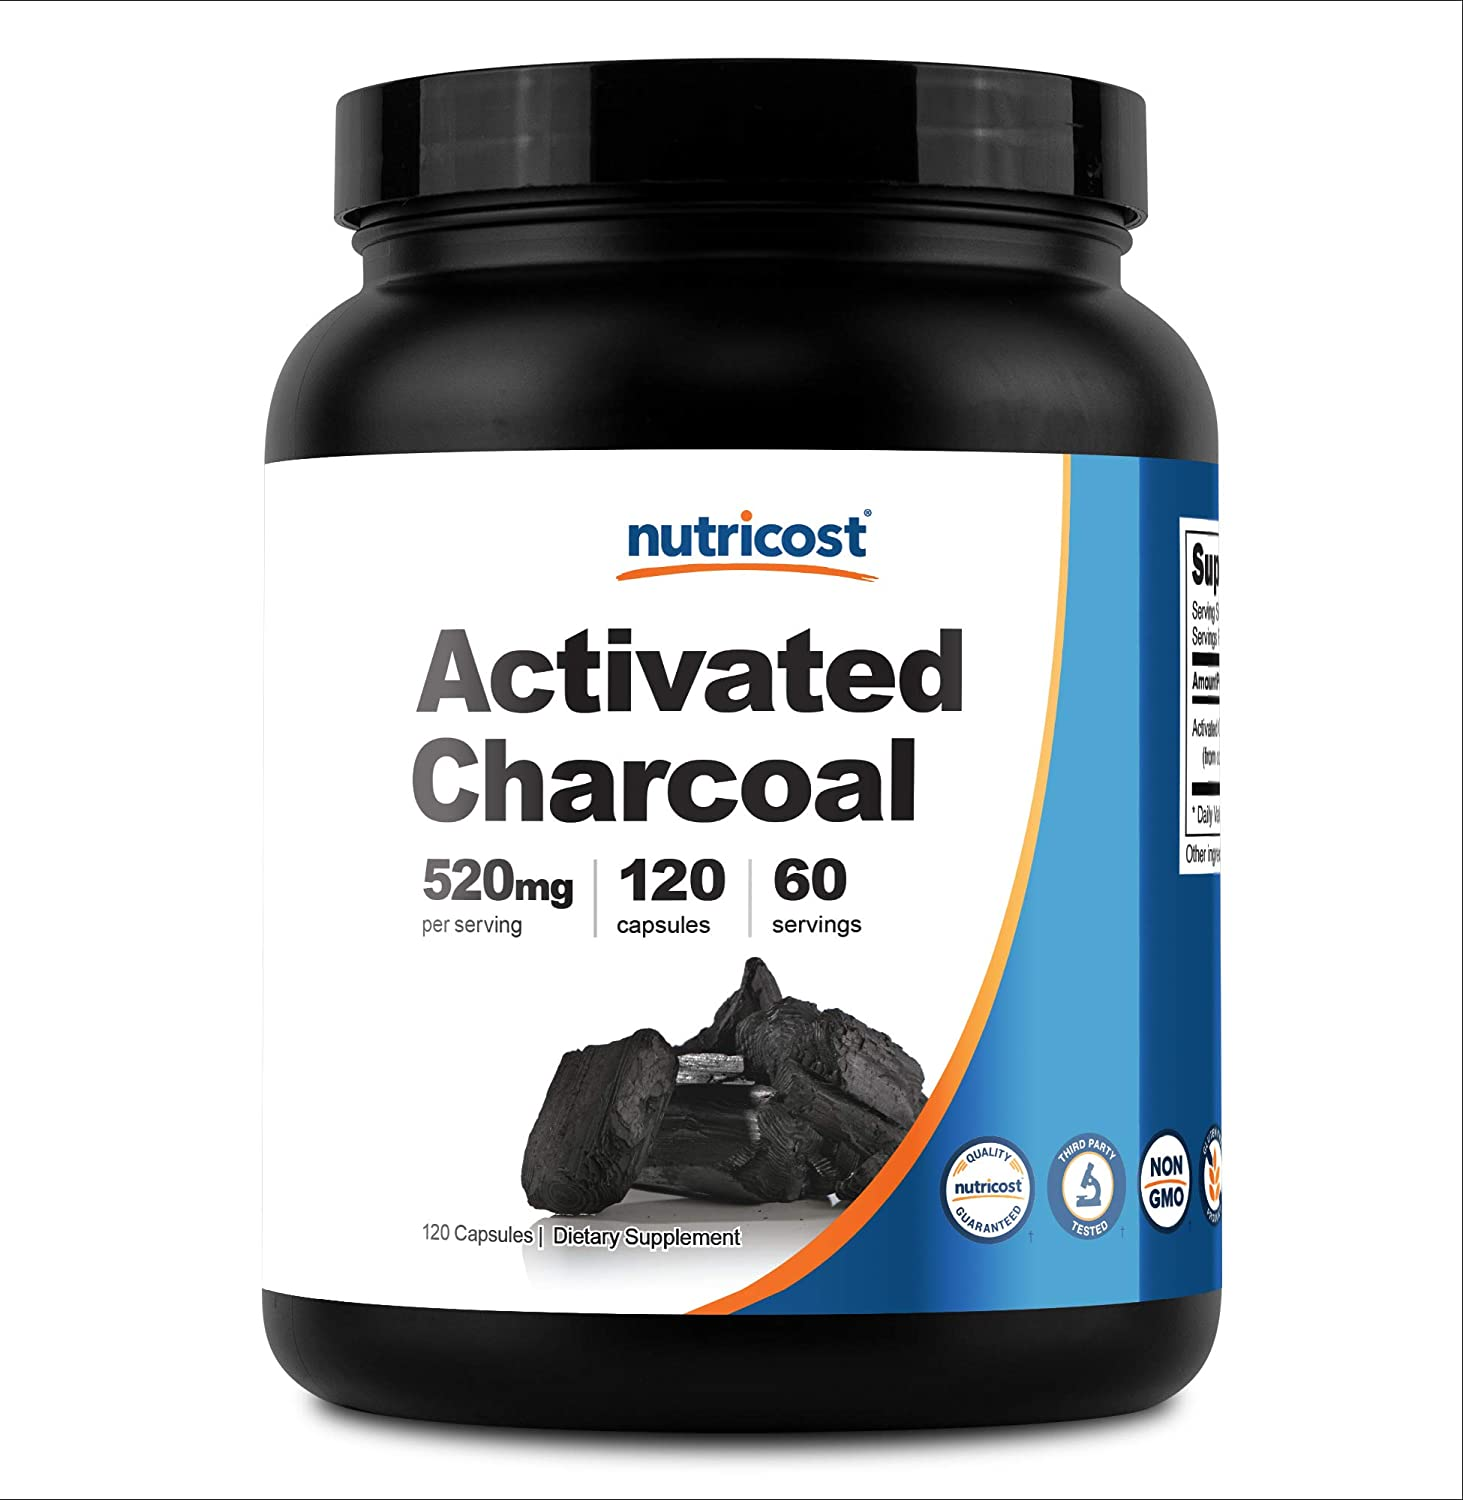 Nutricost Activated Charcoal Powder 1lb - Food Grade Powder, Vegan, Gluten Free, Non-GMO